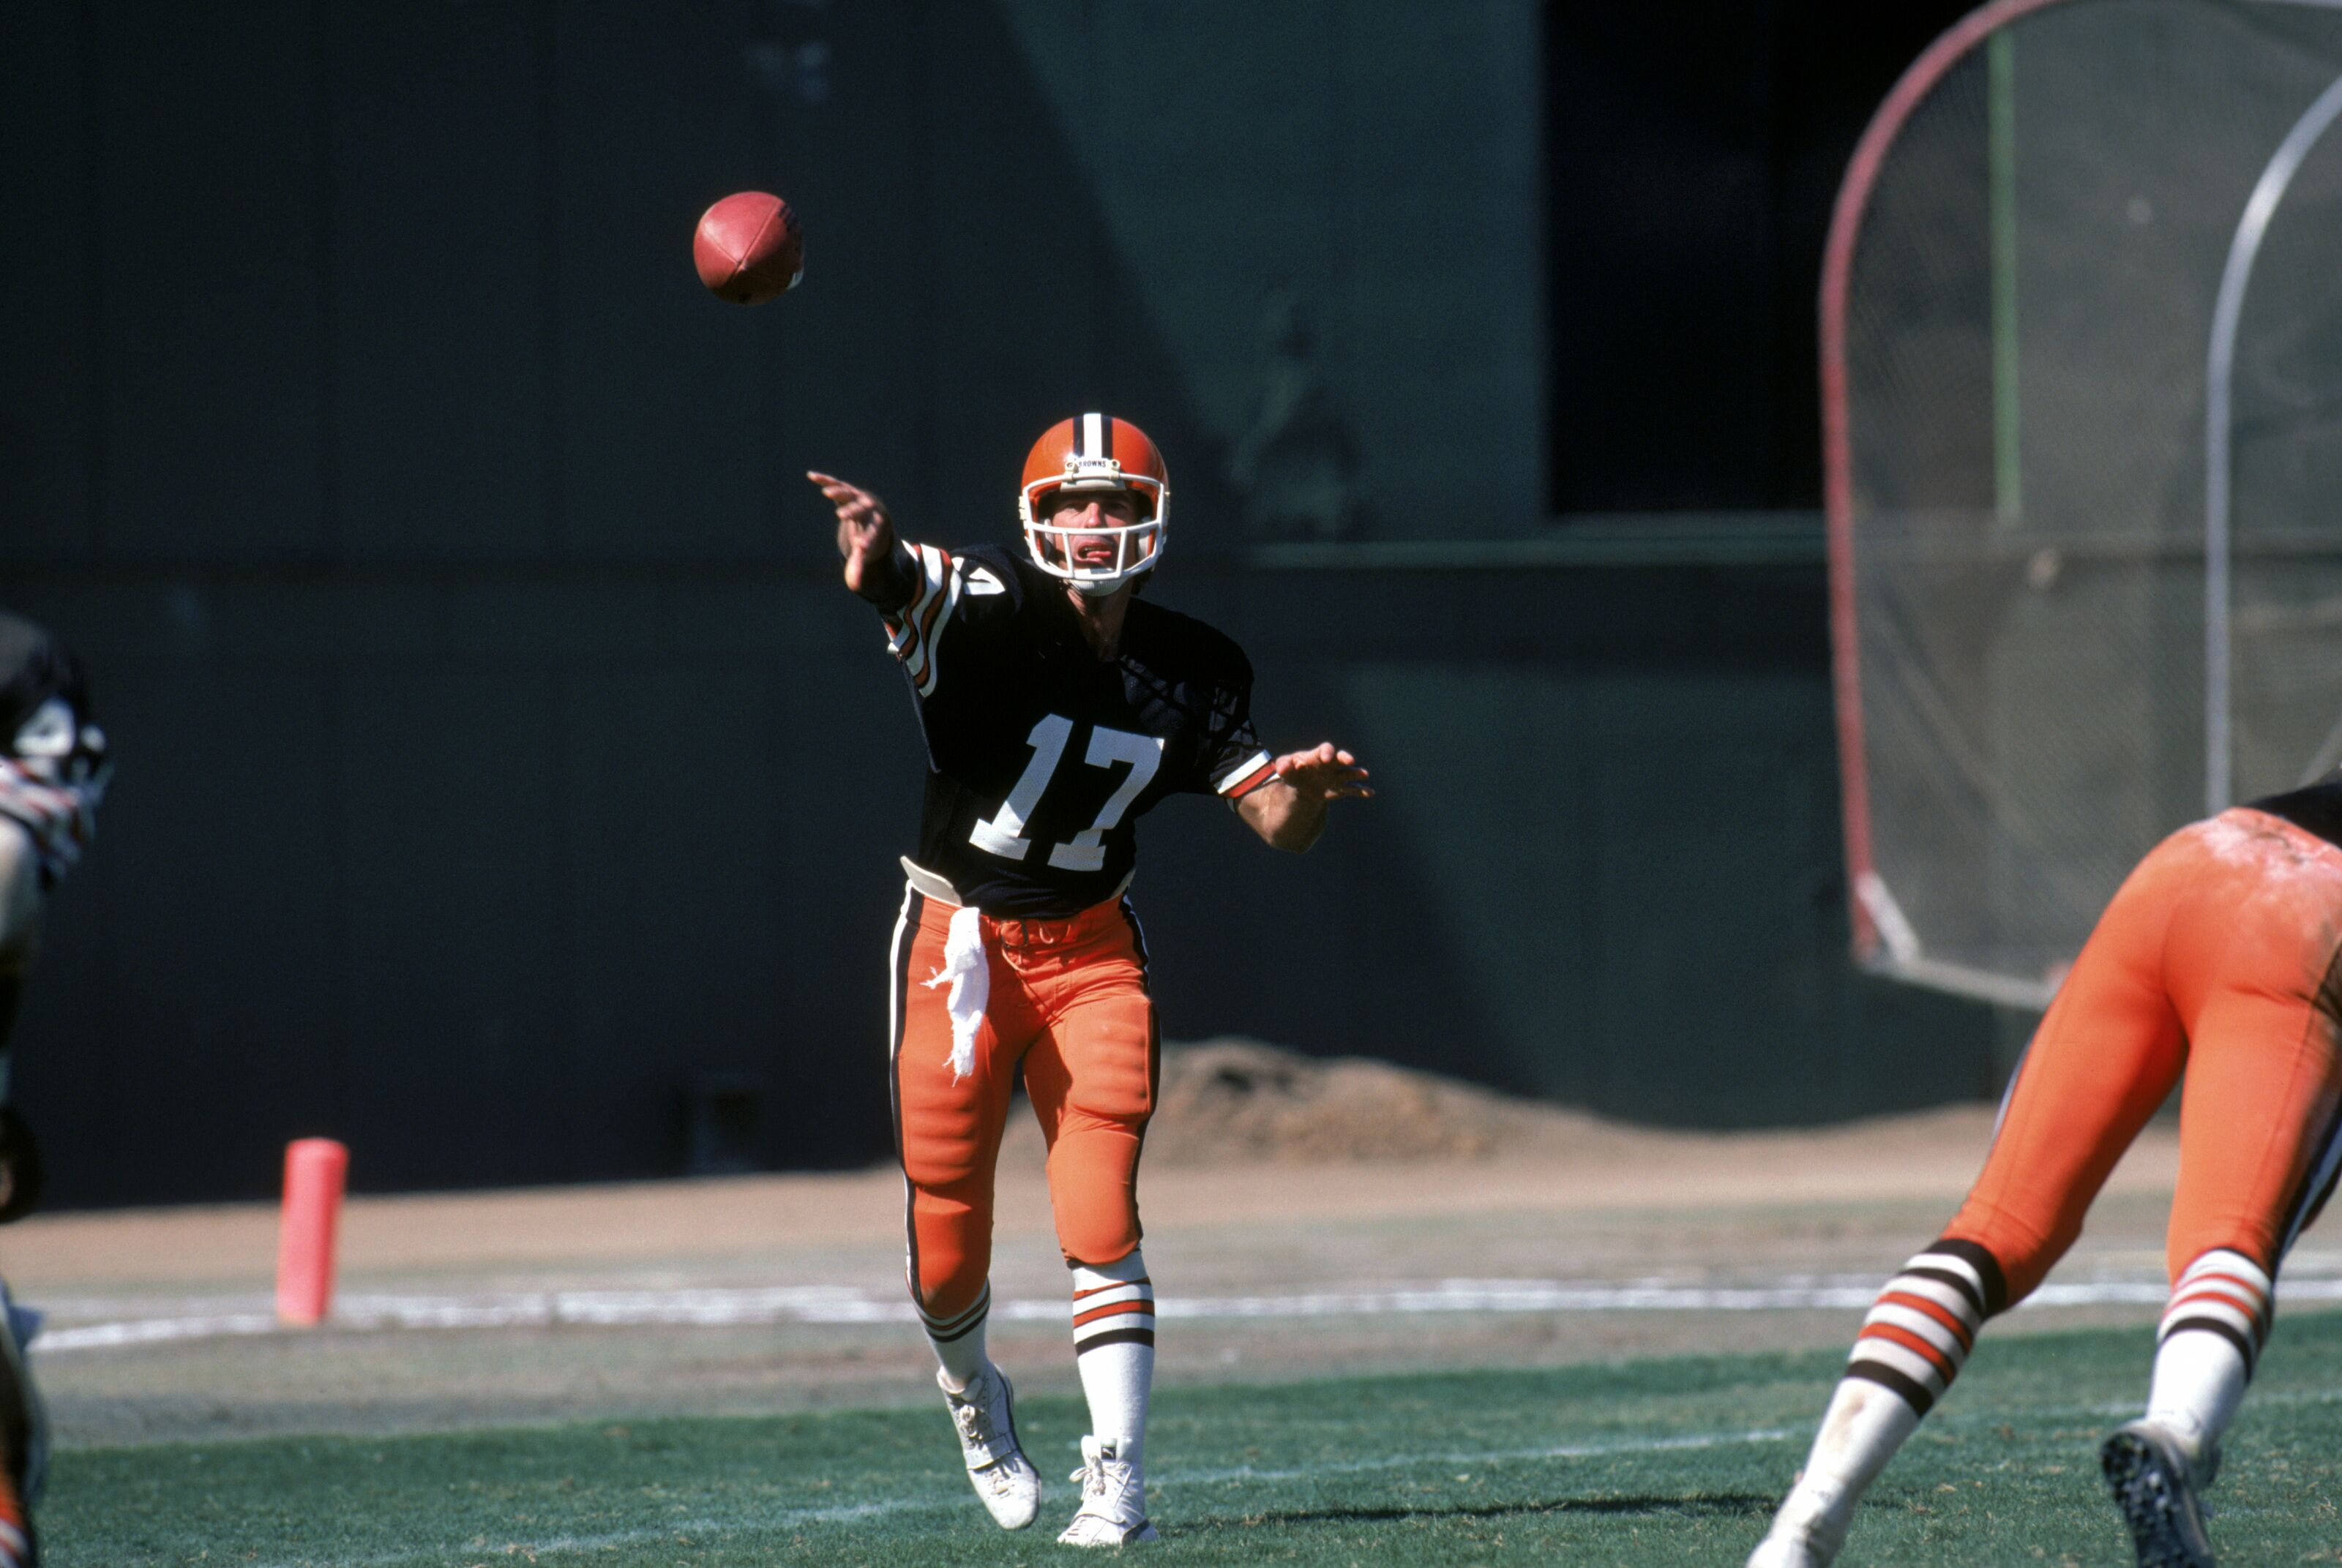 Brian Sipe named Cleveland Browns biggest draft steal of all-time